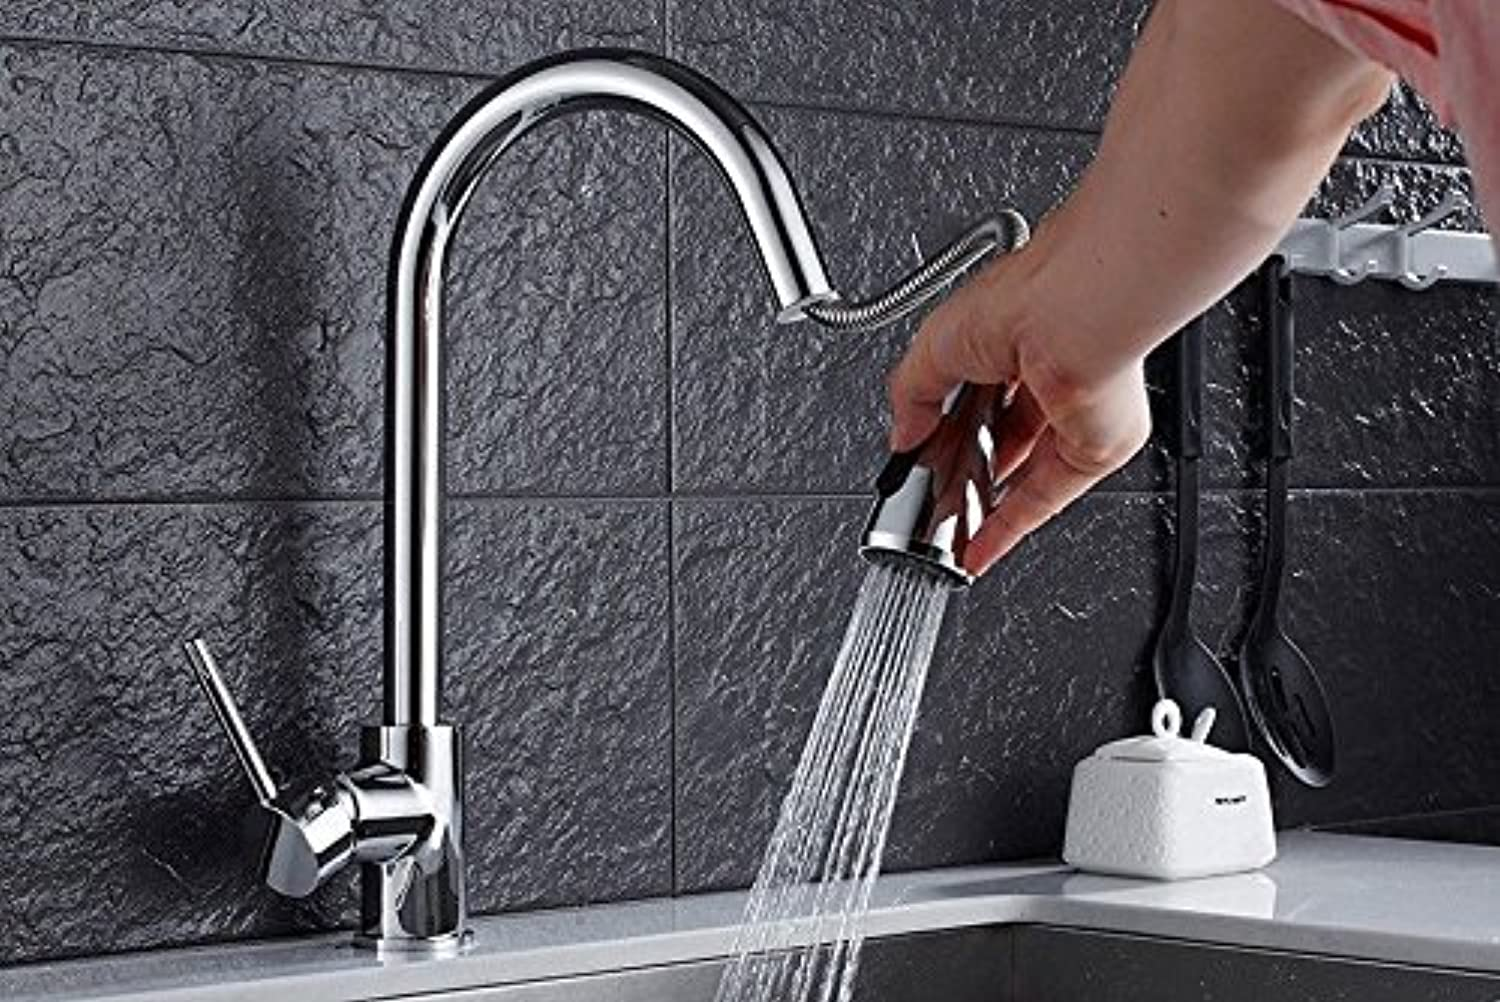 Bijjaladeva Antique Kitchen Sink Mixer Tap Kitchen Faucet Pull redary Tank Washing Dishes hot and Cold Basin Mixer